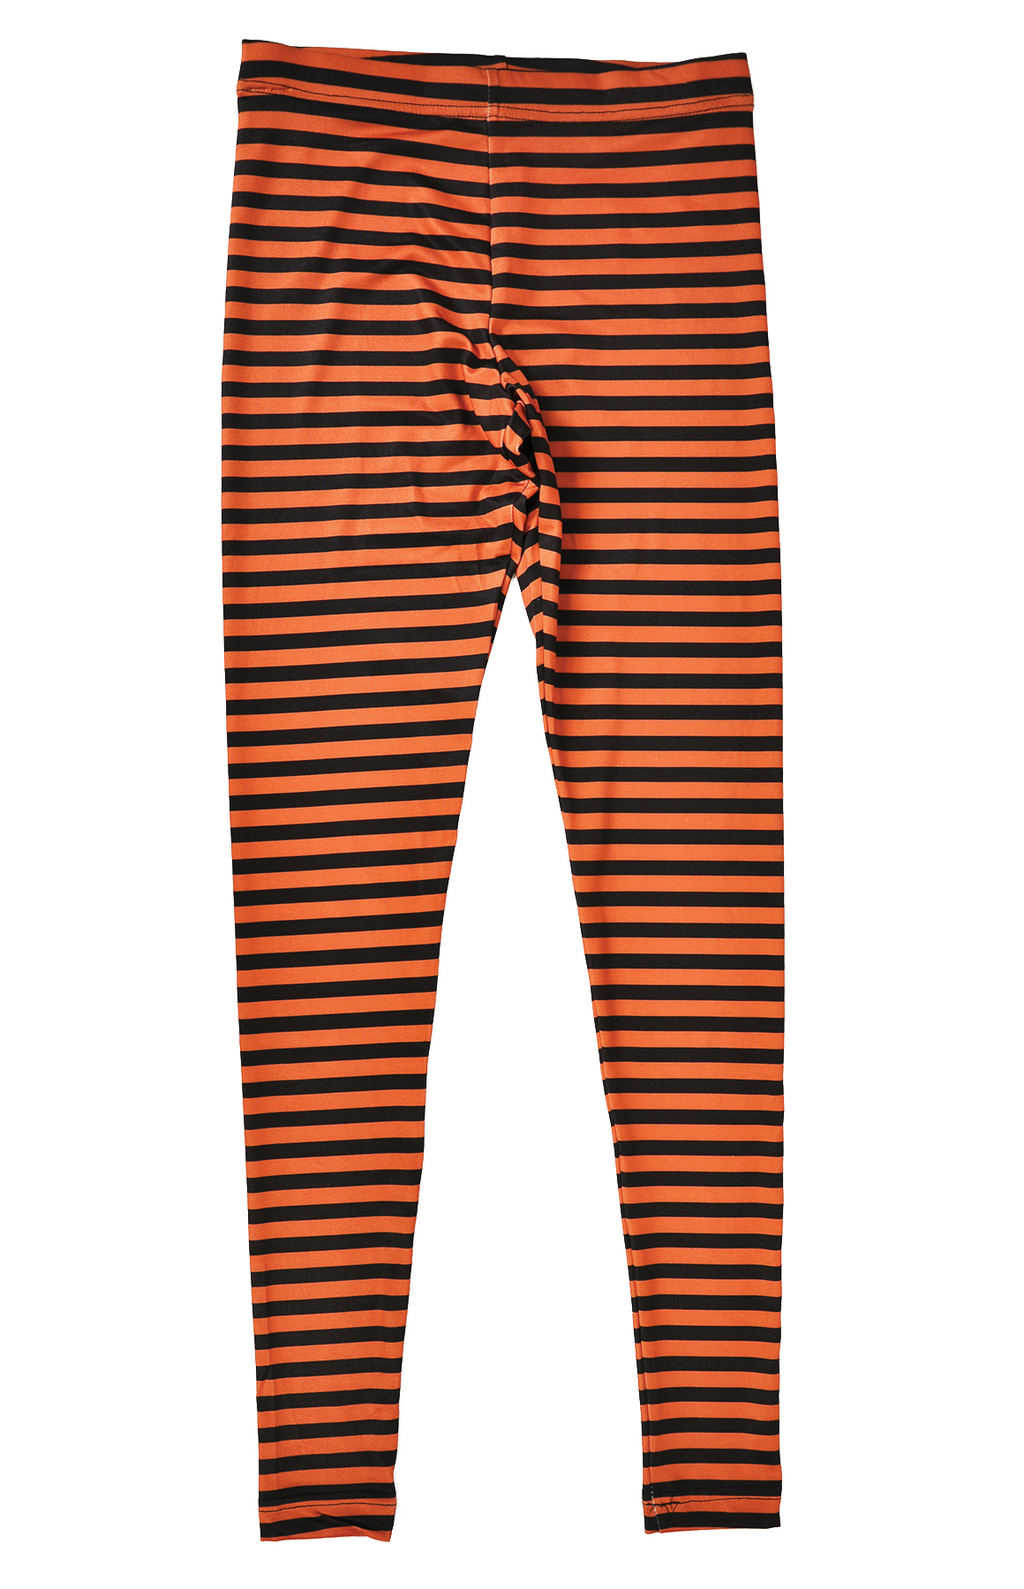 Adult Women's Halloween Orange and Black Striped Leggings - Fest Threads